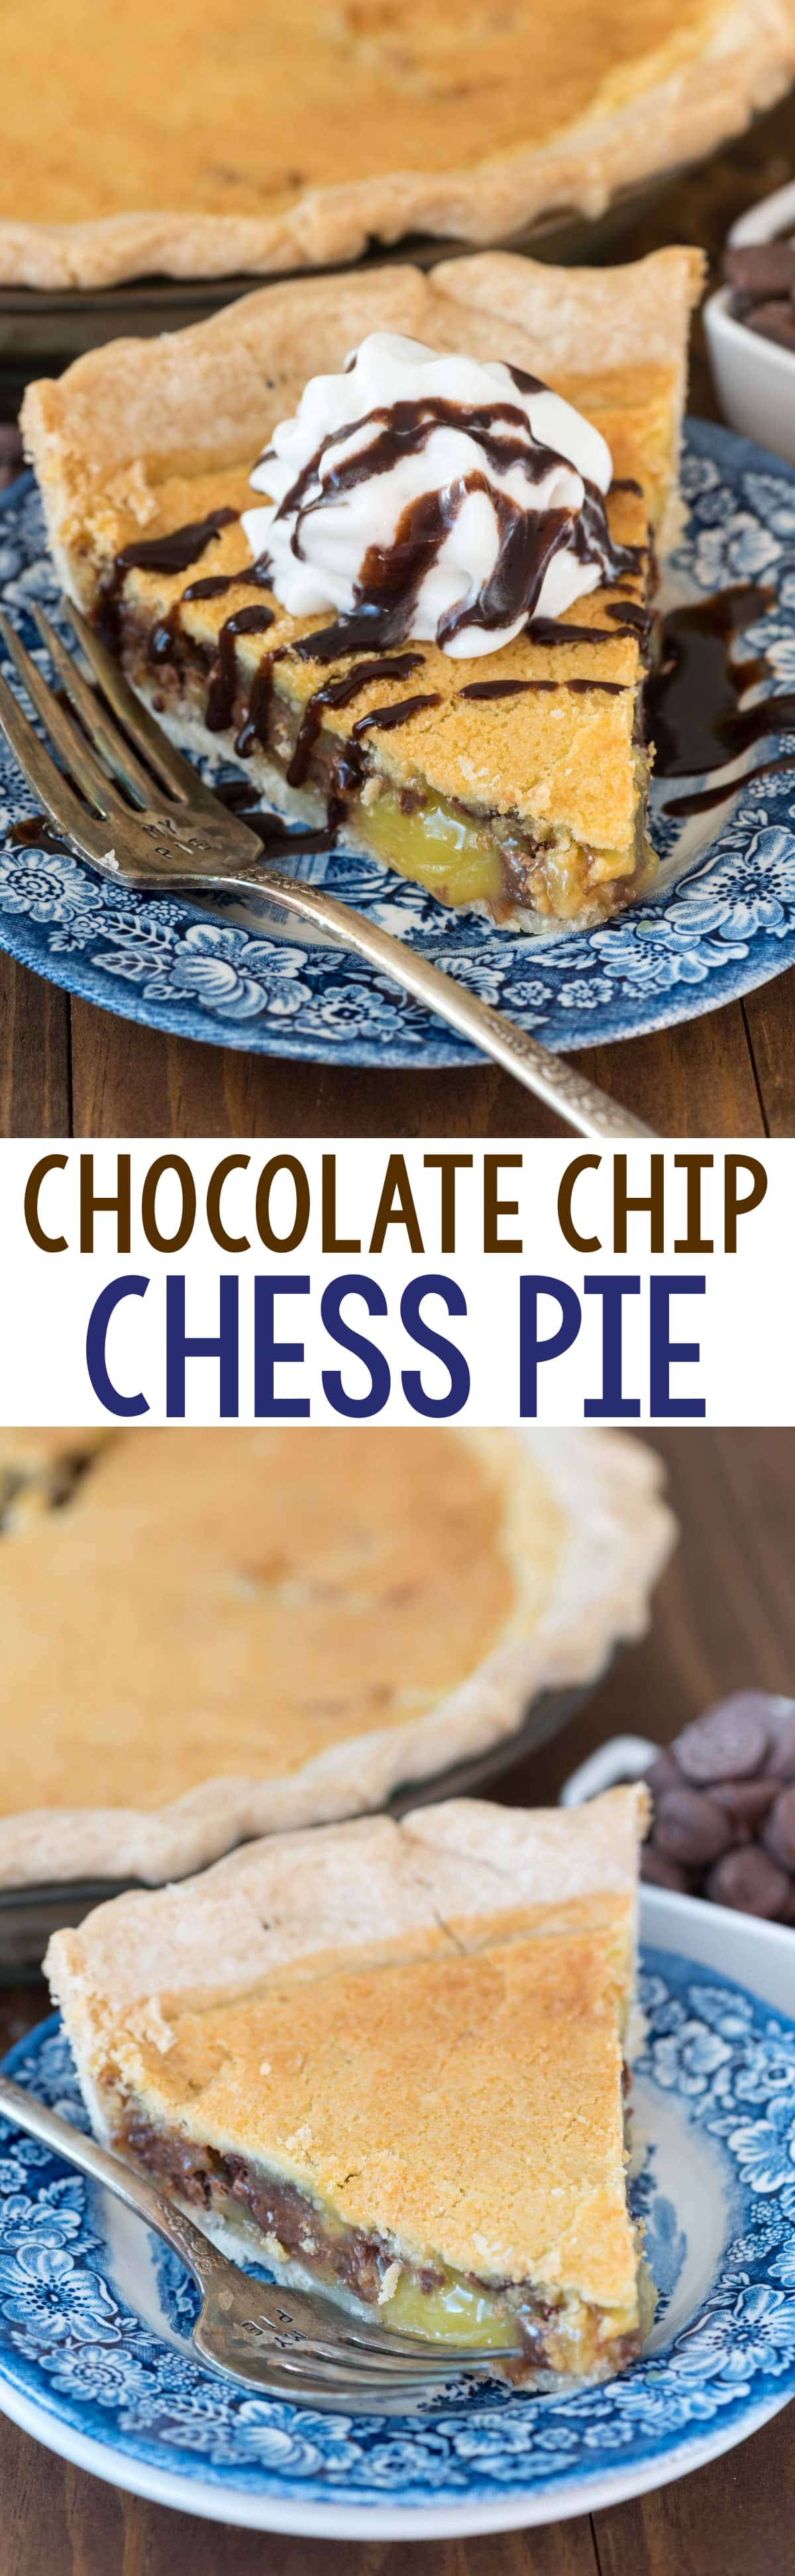 Chocolate Chip Chess Pie - this easy classic chess pie recipe is FULL of chocolate chips! It's the perfect pie for any holiday - everyone LOVES it!